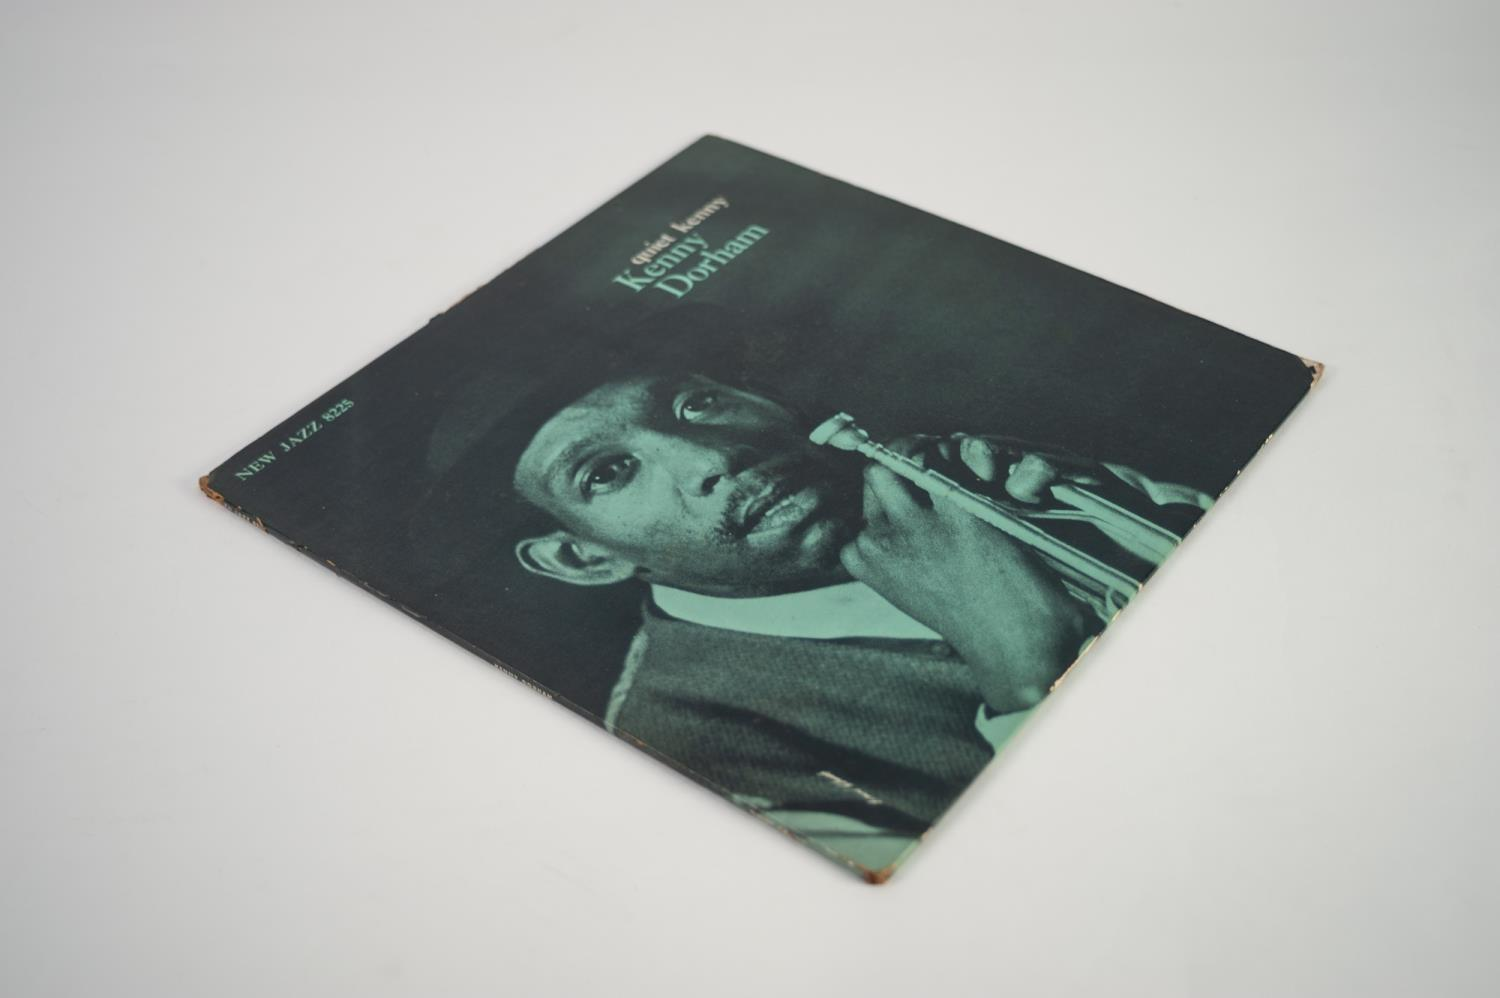 JAZZ, VINYL RECORDS- D IS FOR KENNY DORHAM-QUIET KENNY, NEW JAZZ (NJLP 8225). Original US pressing - Image 5 of 7